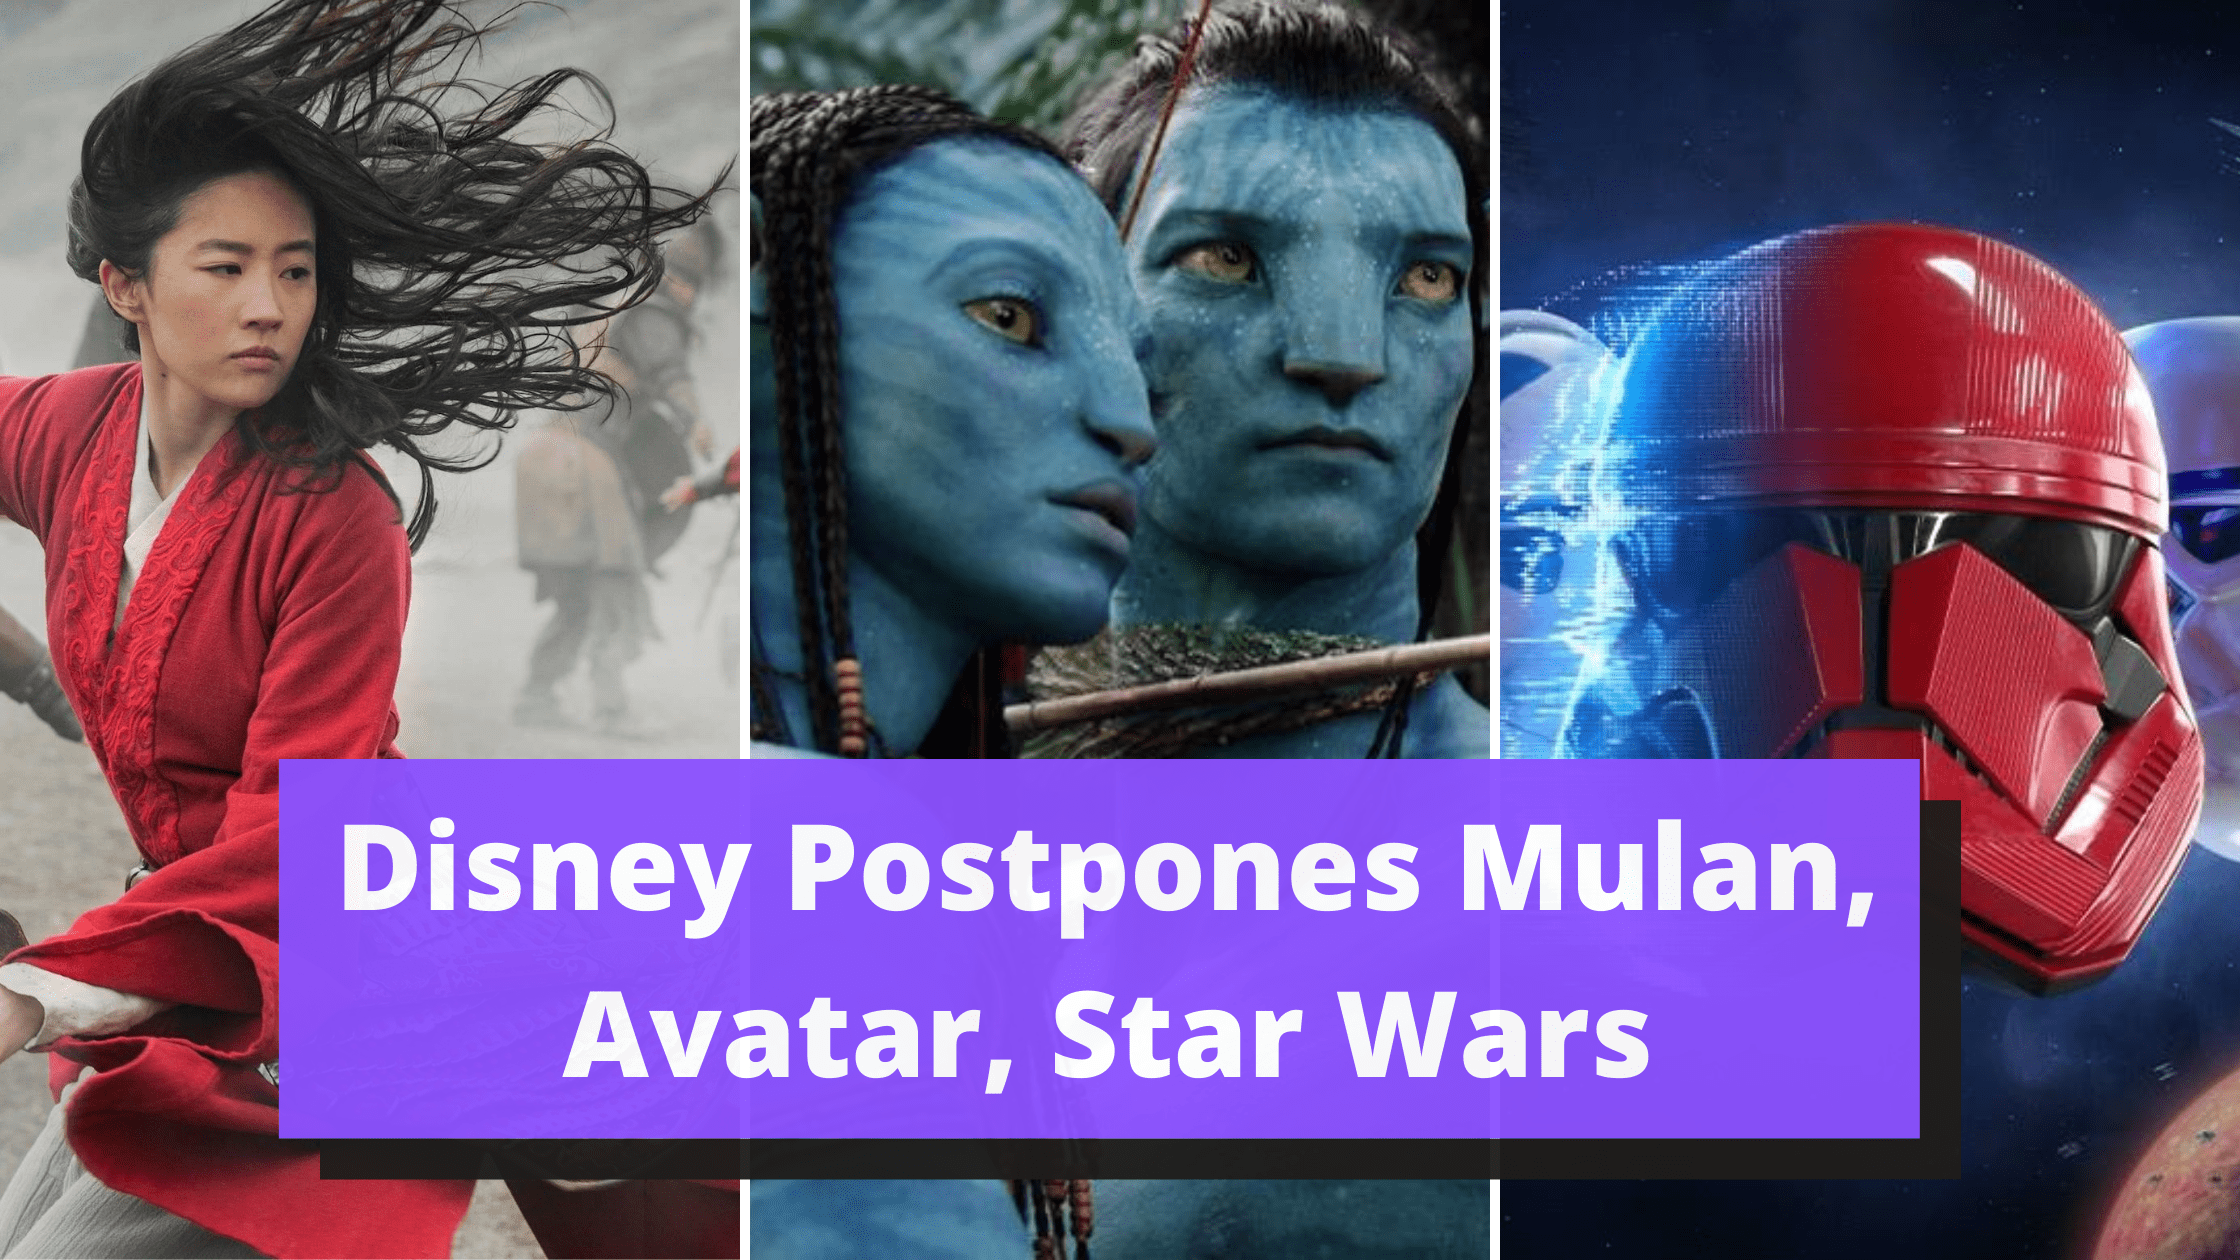 Disney-Postpones-Mulan-Avatar-Star-Wars